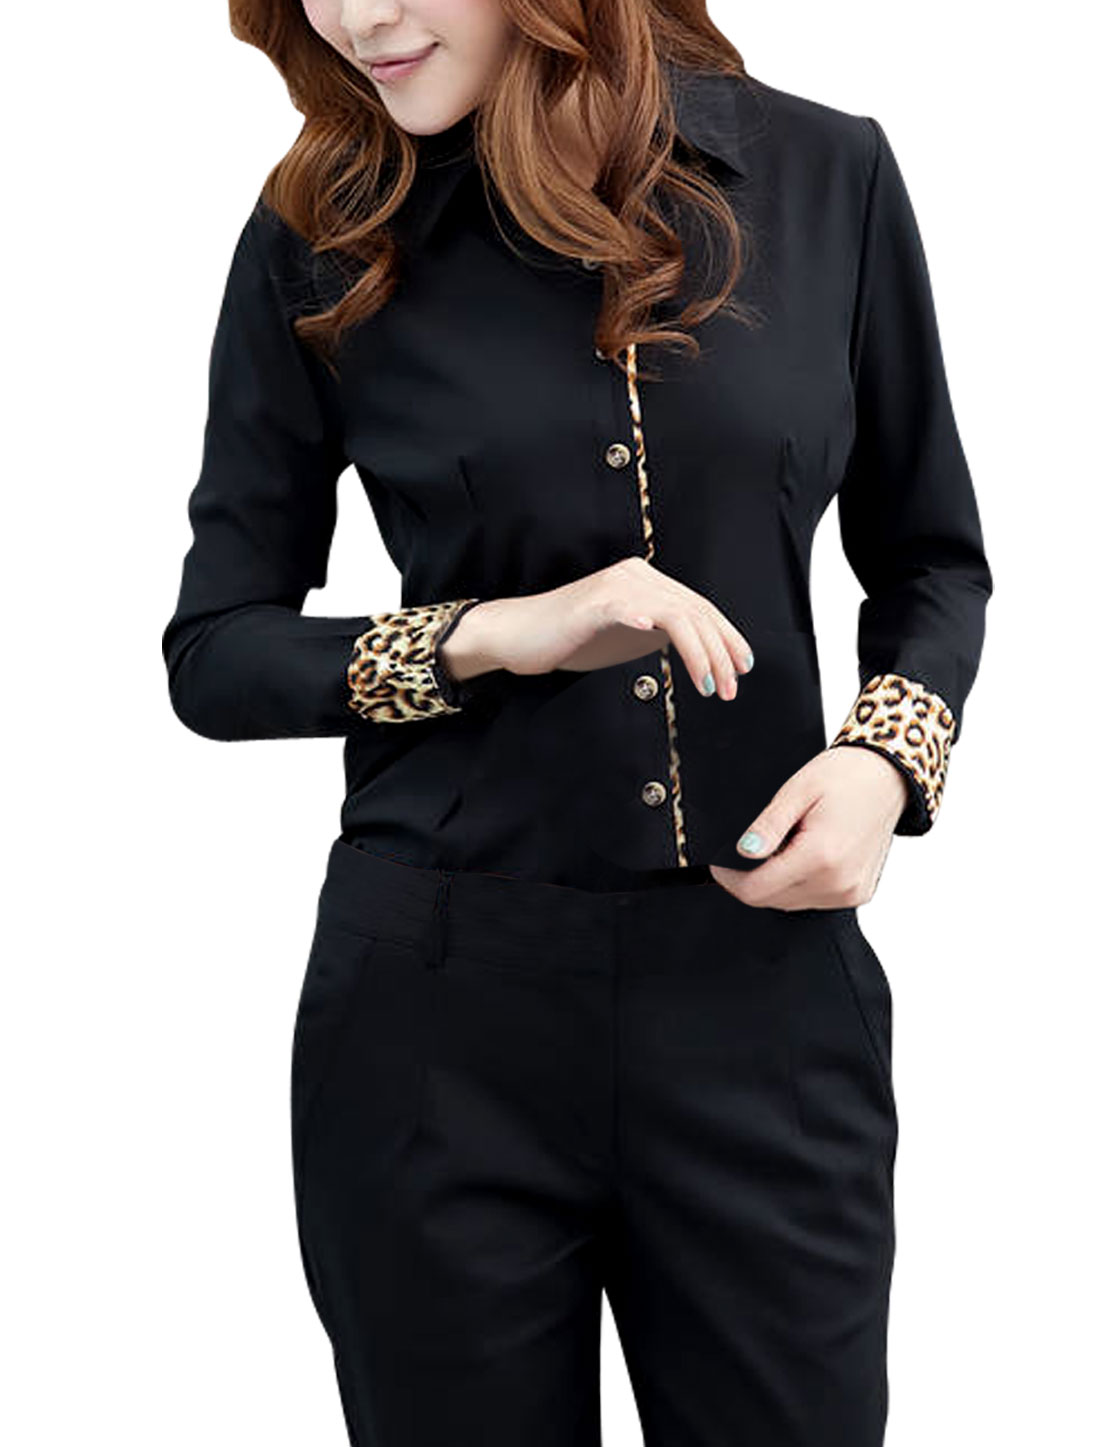 Black L Round Trim Long Sleeve Leopard Print Button Down Women Top Shirt